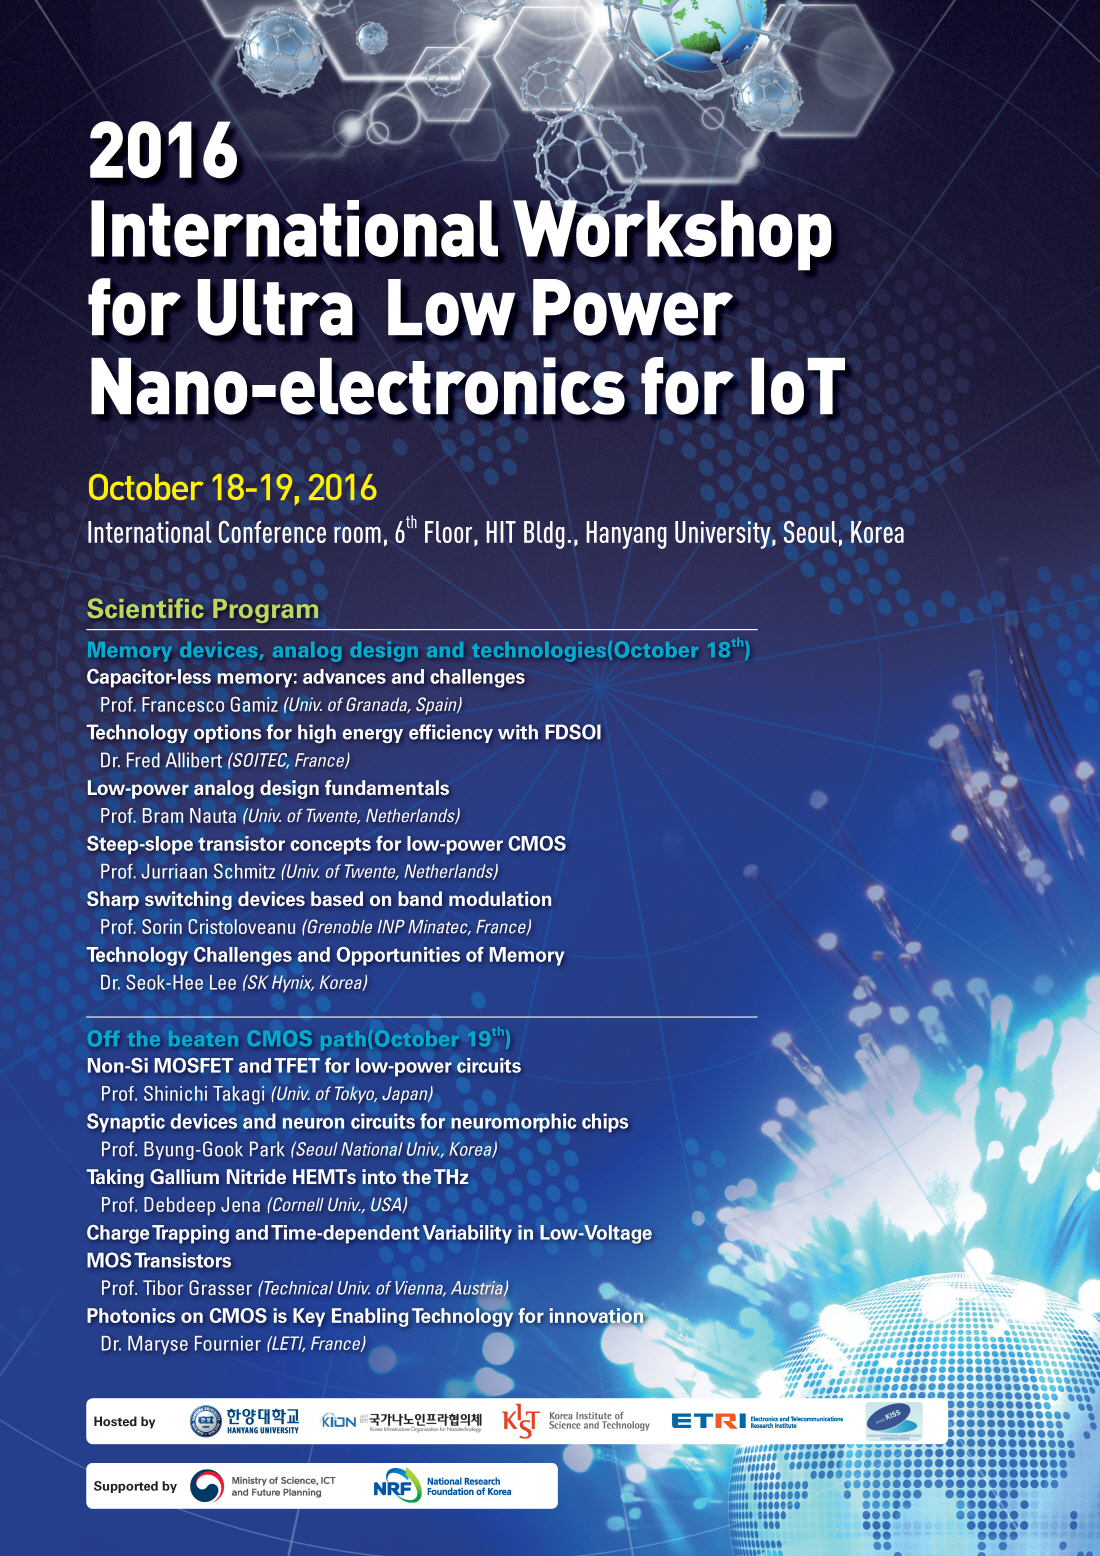 2016 초저전력 반도체 기술 워크샾 (2016 International Workshop for Ultra Low Power Nano-electronics for IoT)